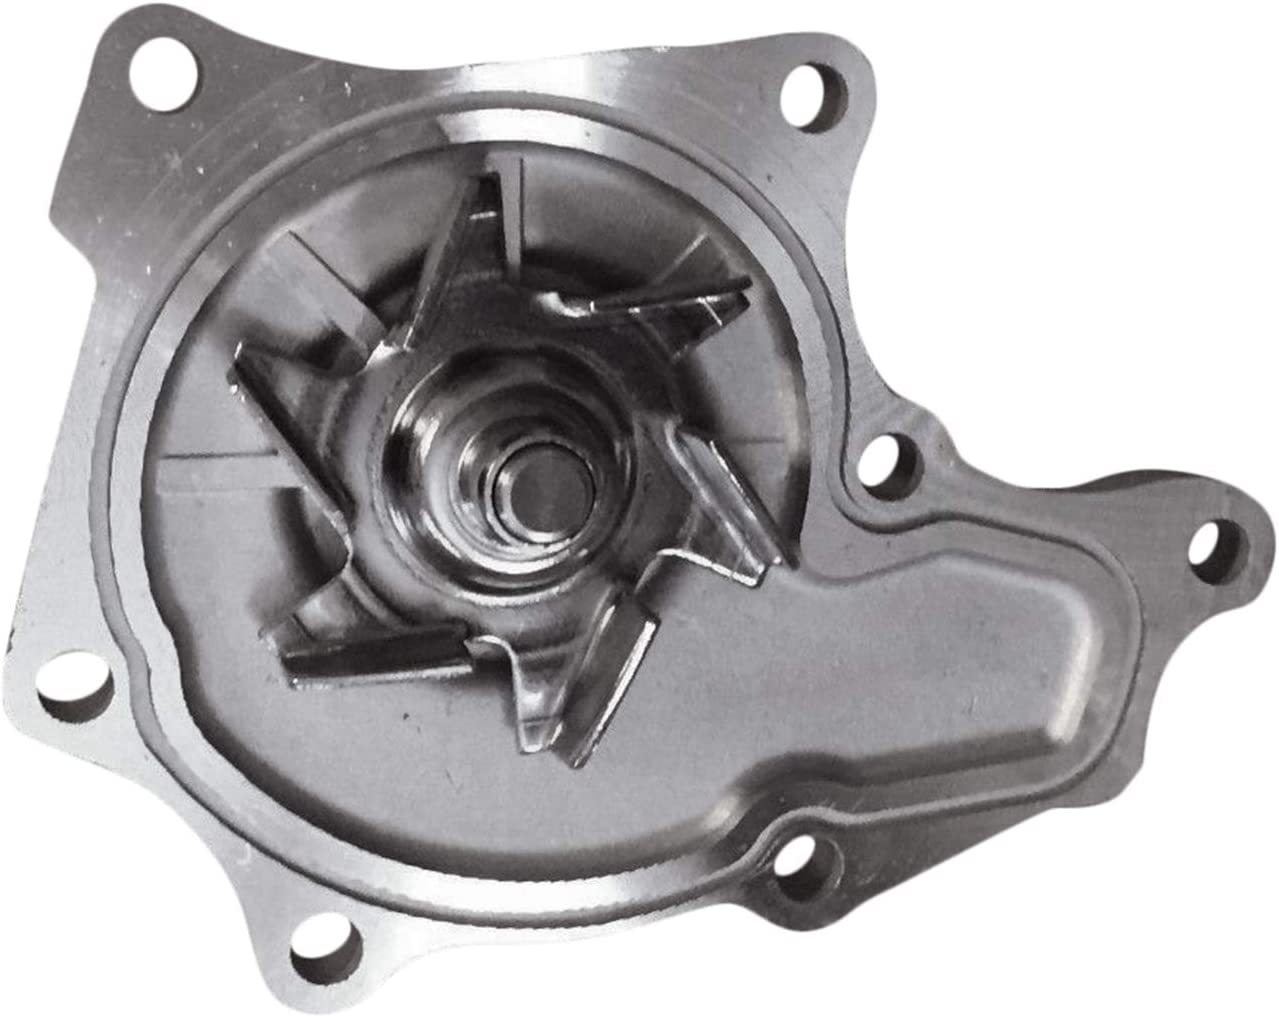 Engine Water Pump 8-94140-341-2 8-94310-251-0 8-94376-844-0 for Isuzu 4JB1 4JA1 4JG1 4GJ2 Takeuchi Multi Terrain Loader TL140 TL216 TL26